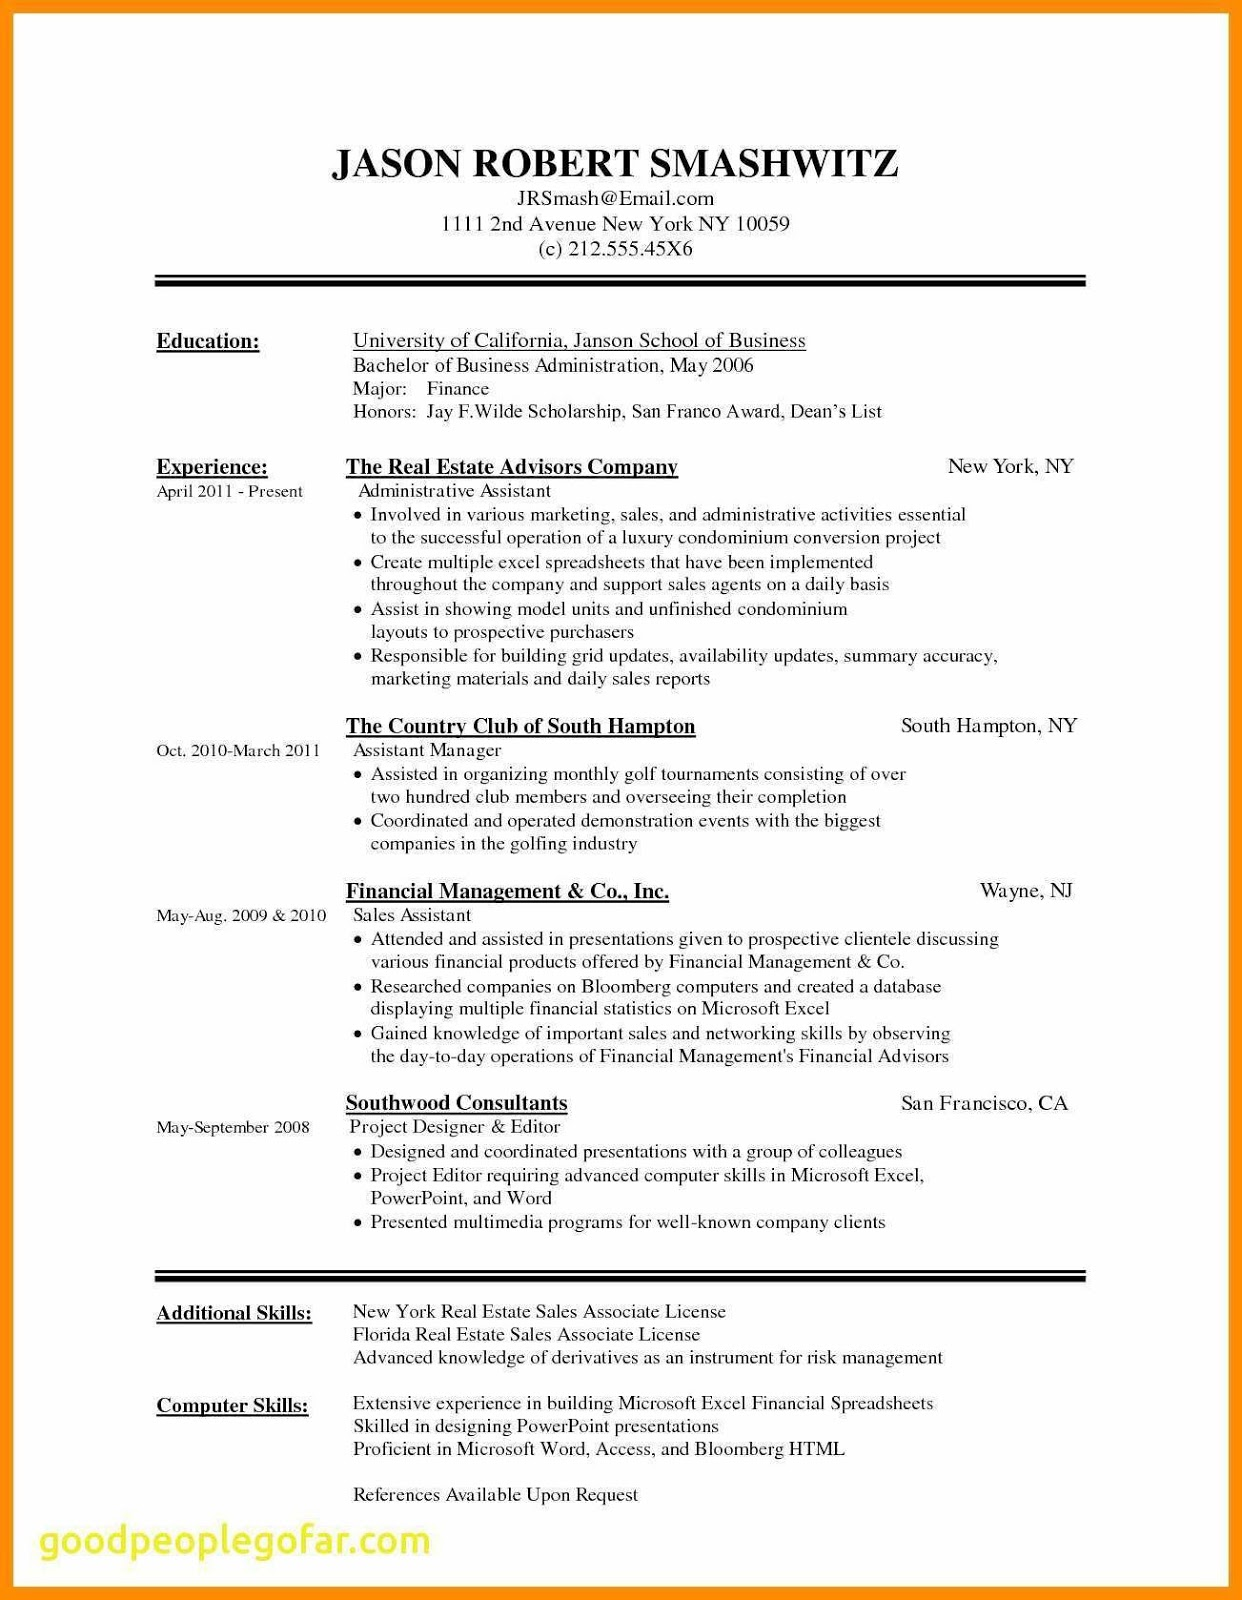 cosmetologist resume example, cosmetologist resume examples newly licensed, cosmetologist resume sample, cosmetologist skills resume example 2019, entry level cosmetologist resume examples 2020, resume example for a cosmetologist, cosmetology resume examples beginners,